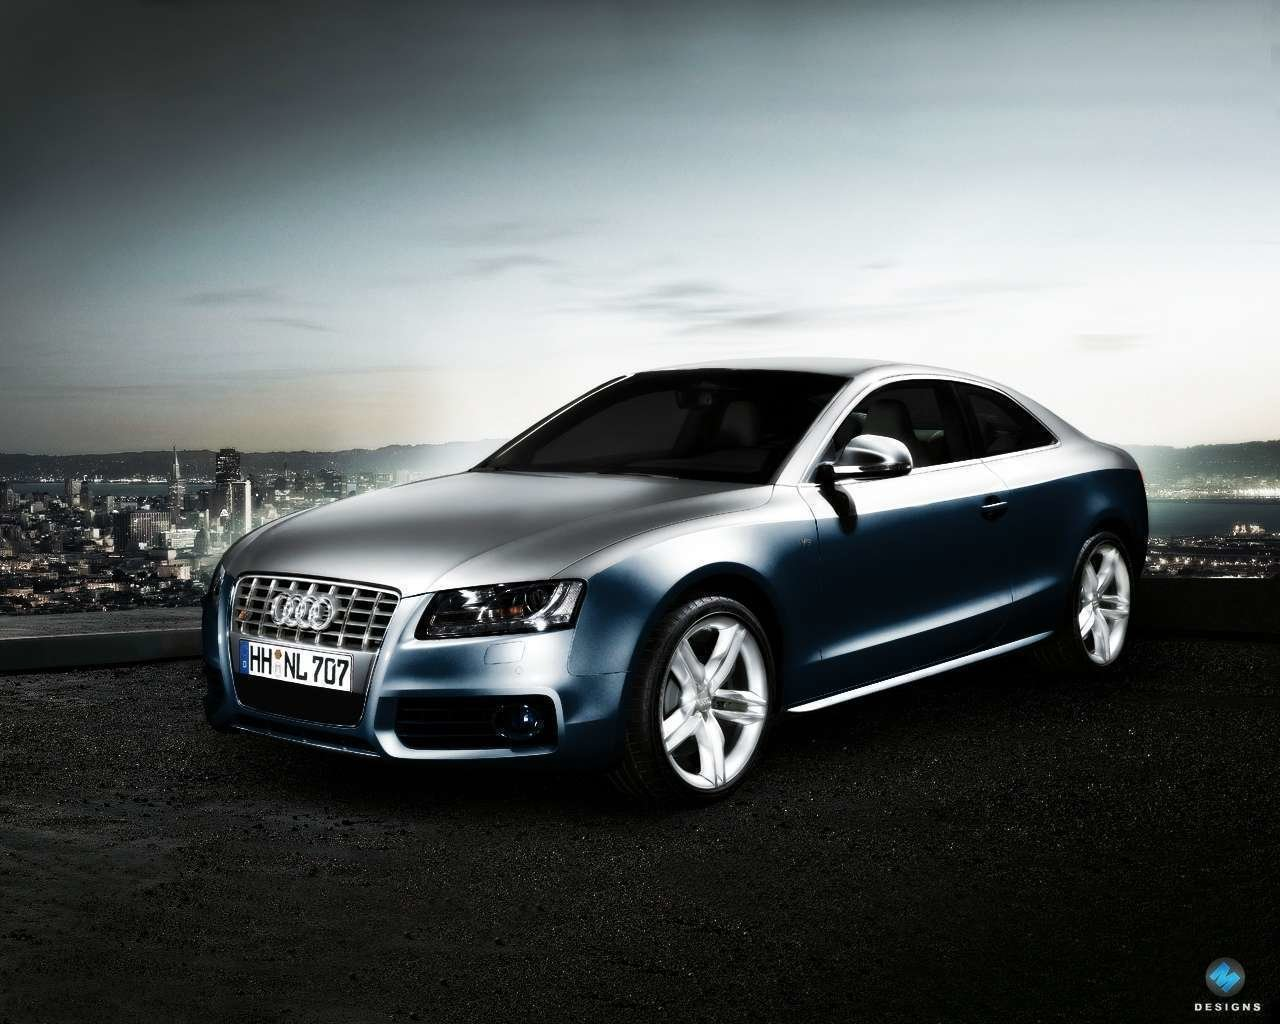 Latest Audi Cool Car Wallpaper Hd Wallpapers A6 Black Edition Free Download